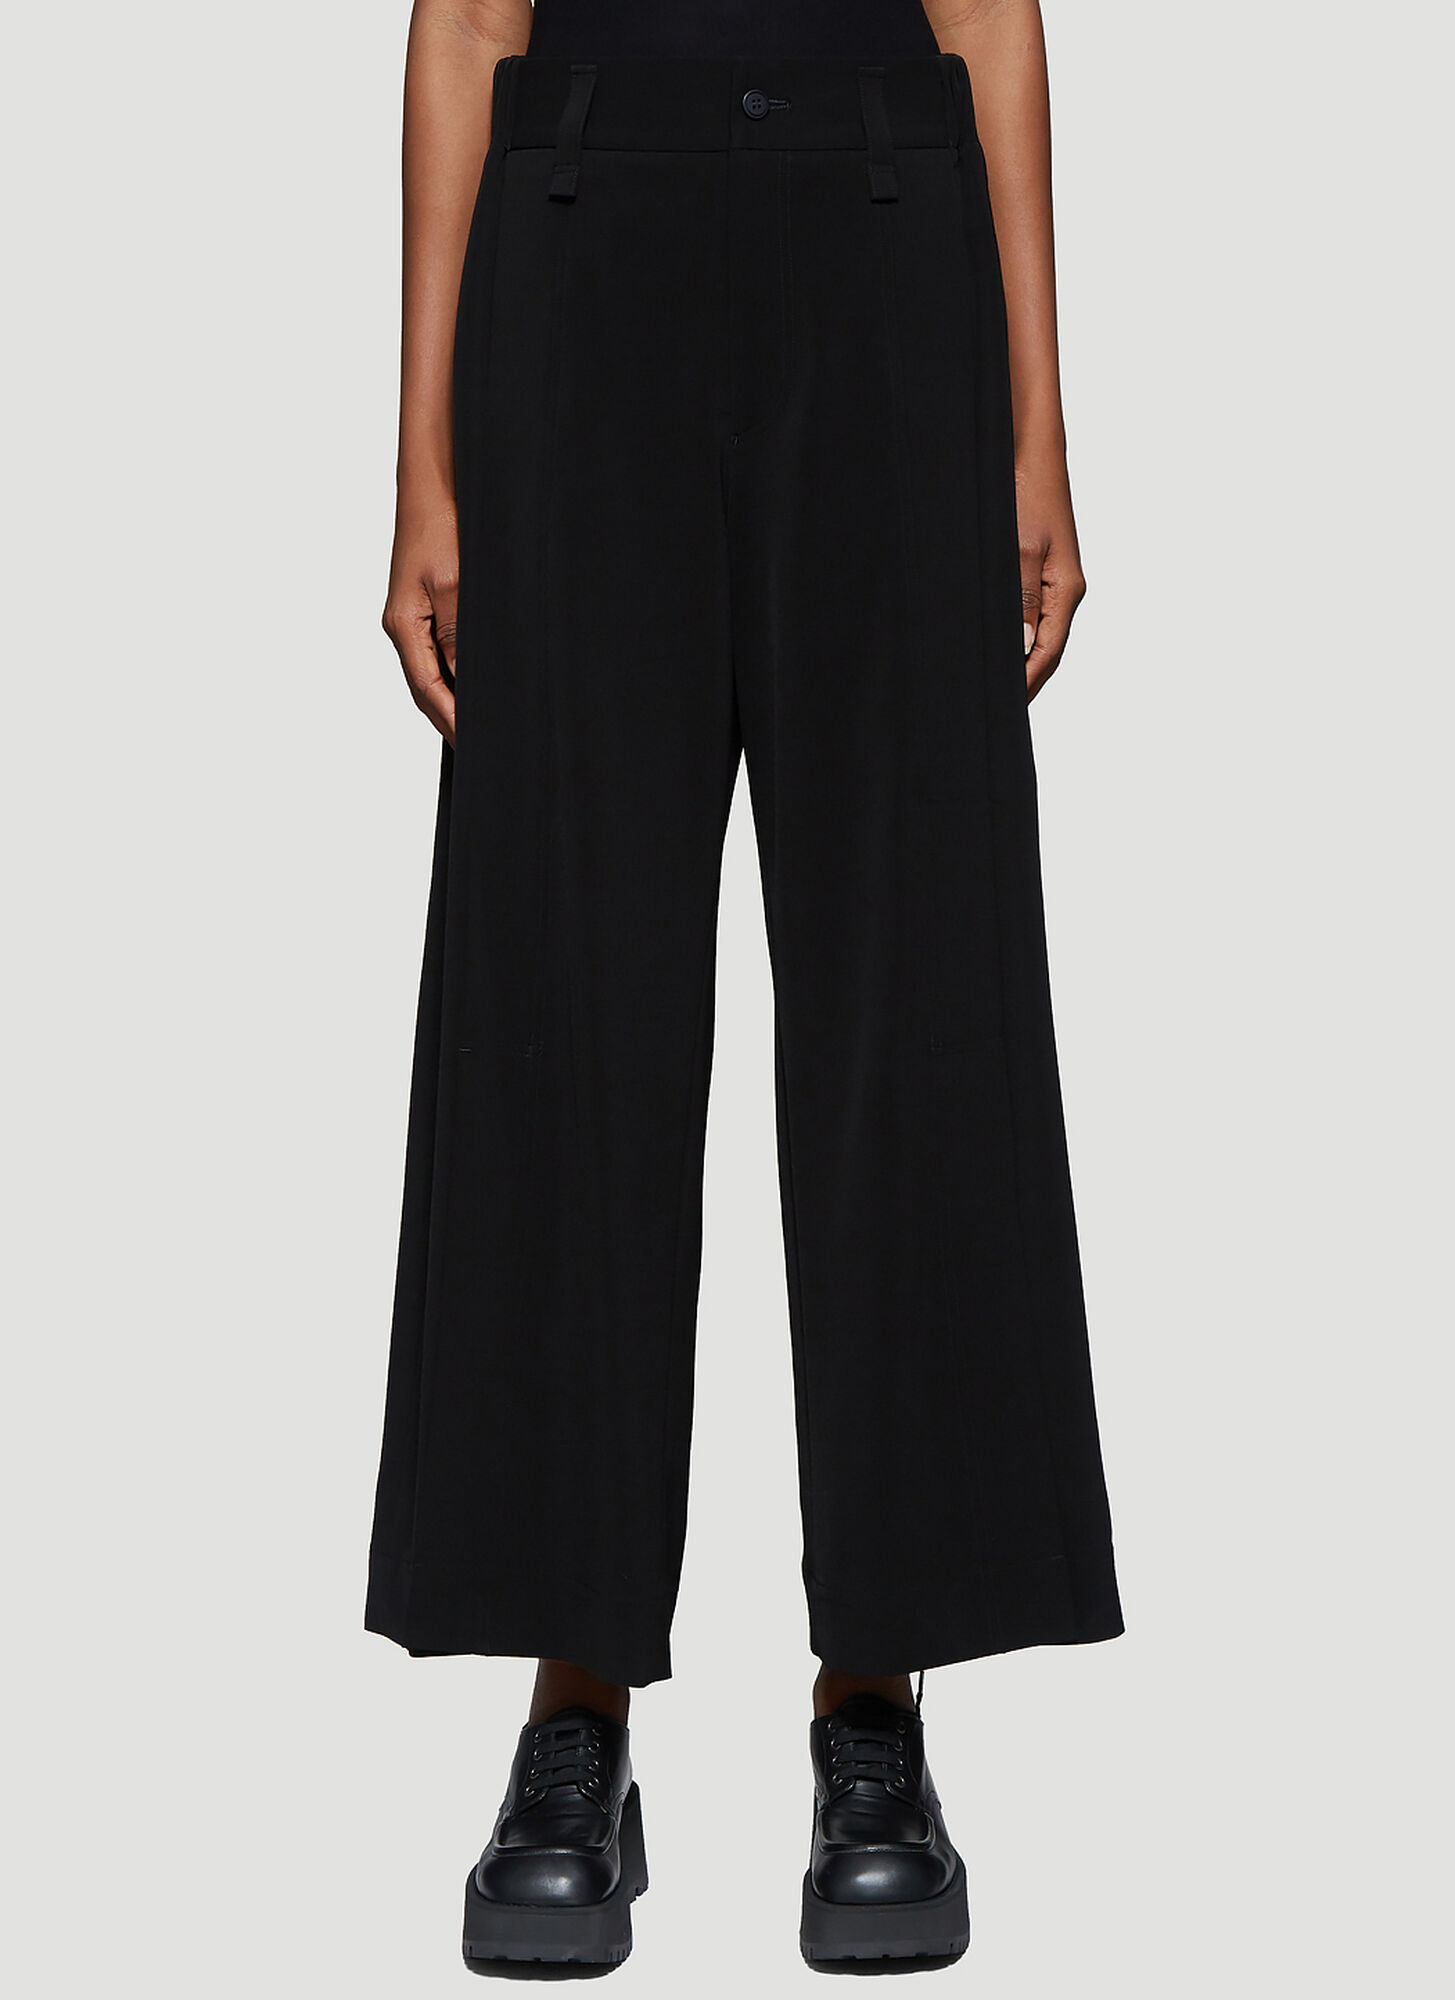 Issey Miyake Front Pleat Tailored Pants in Black